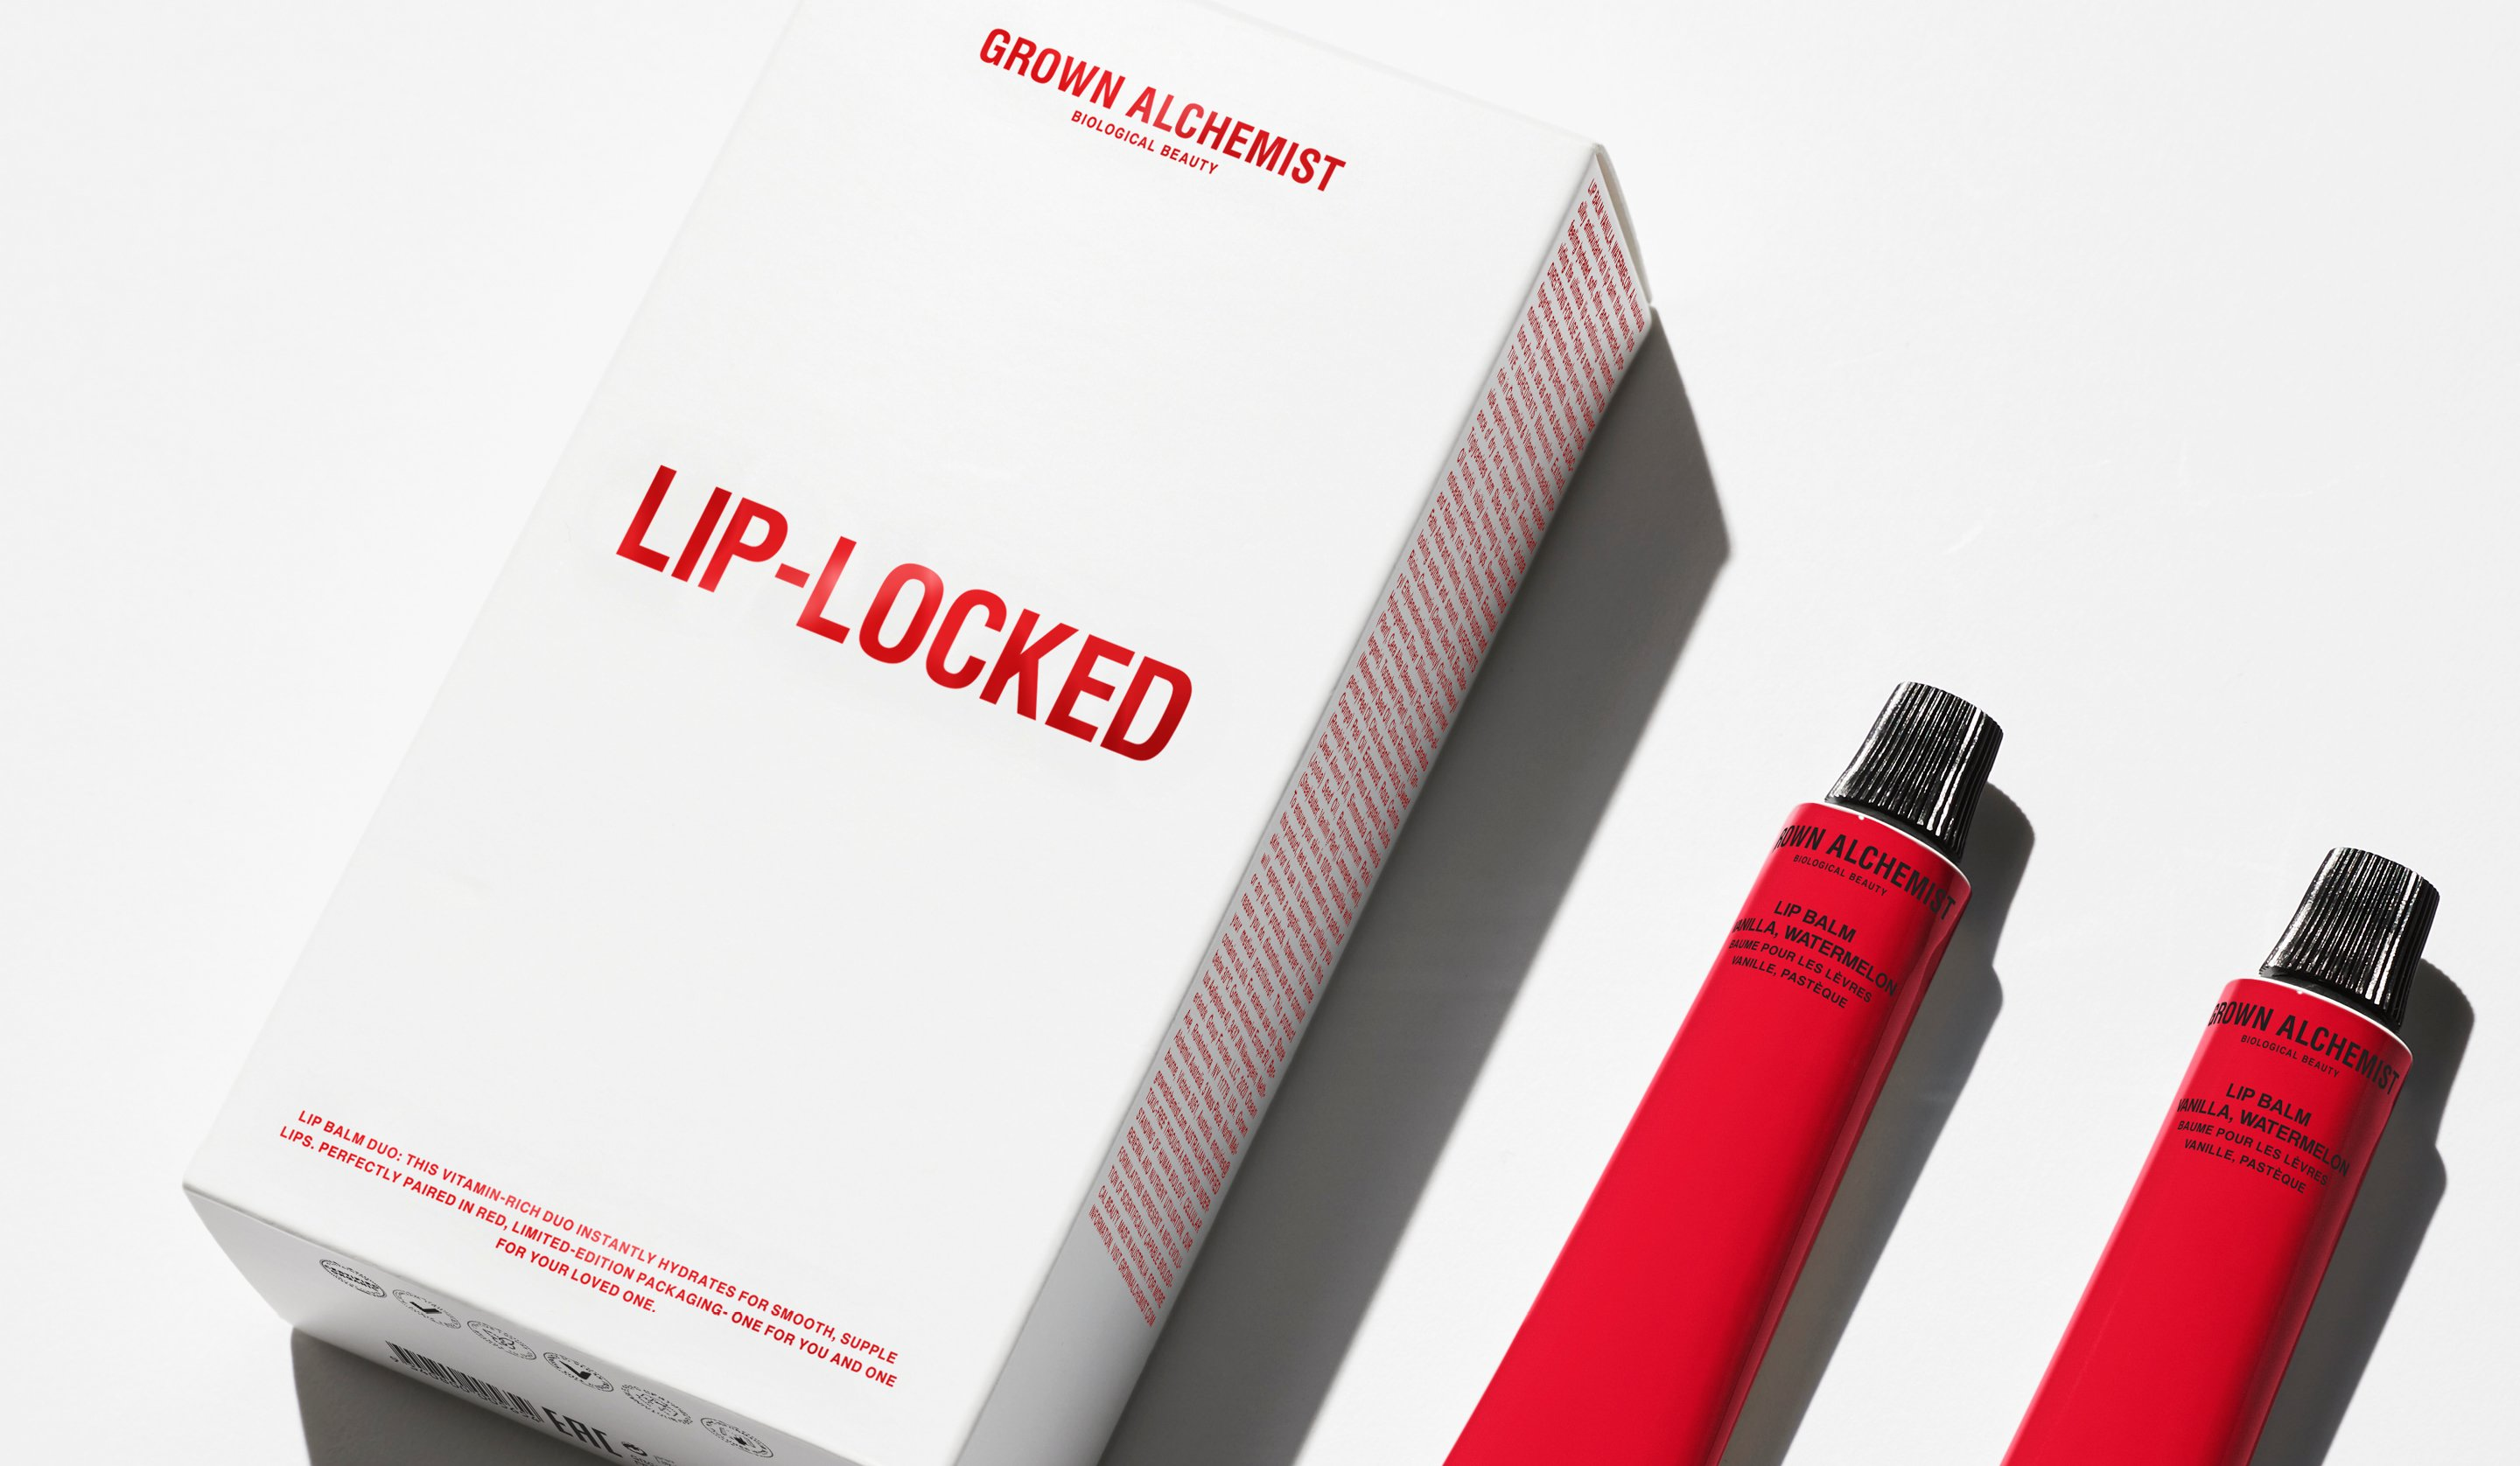 LIP-LOCKED VALENTINE'S DAY KIT